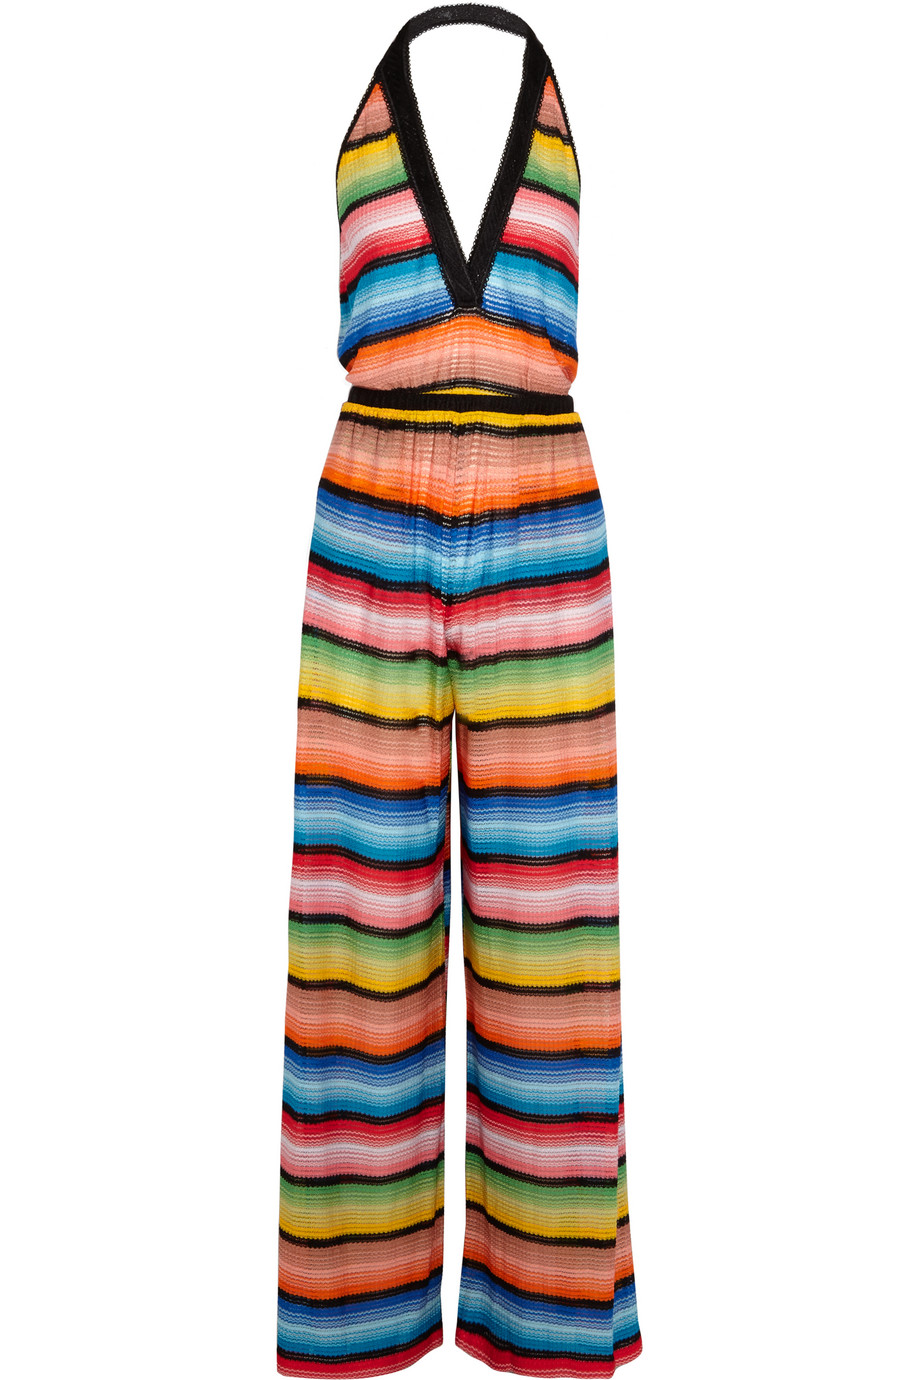 Missoni Crochet-Knit Halterneck Jumpsuit, Blue/Orange, Women's, Size: 44